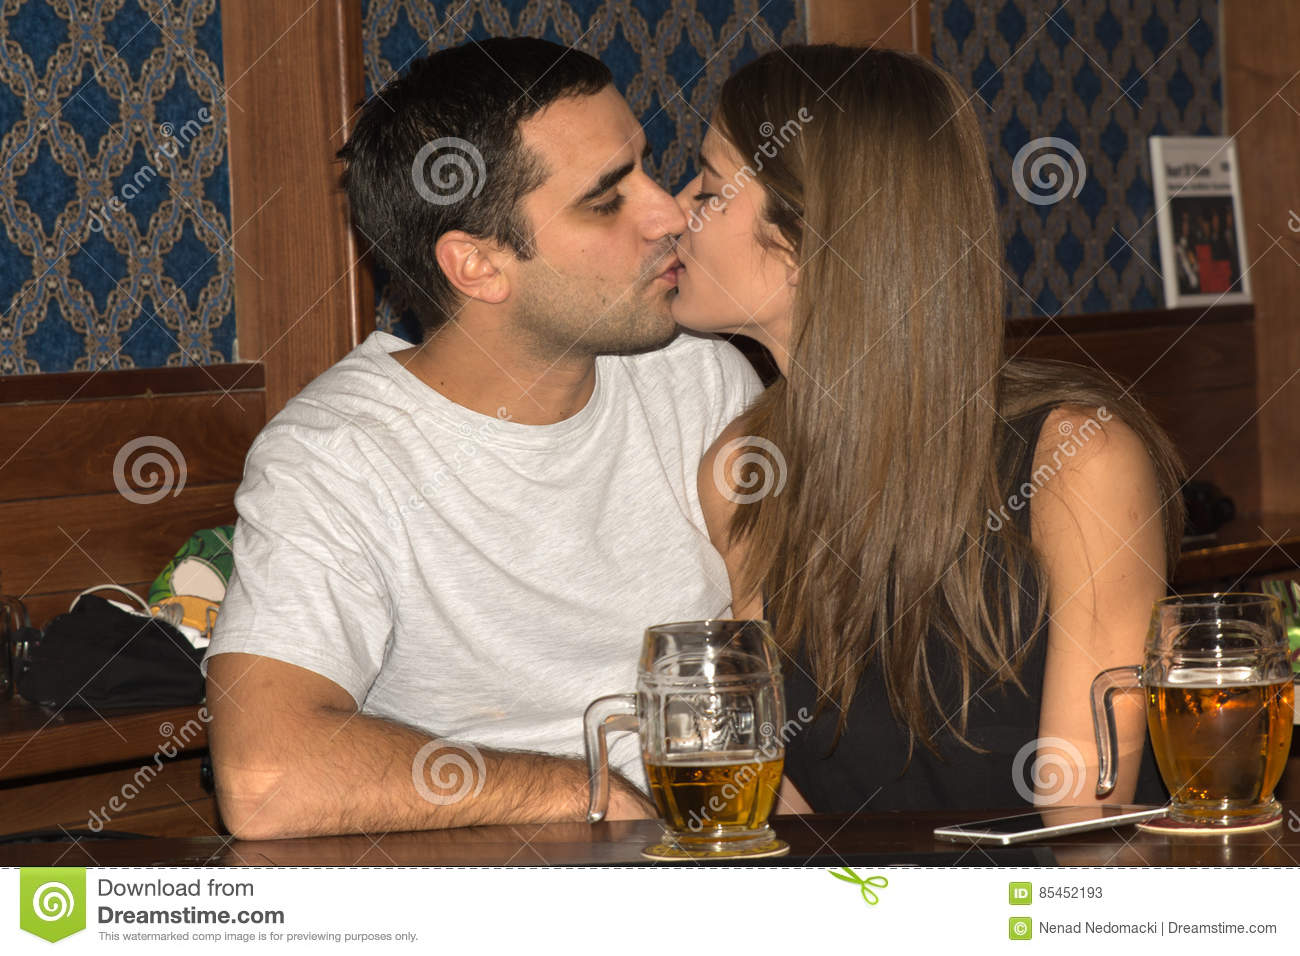 Couple drinking and having fun together